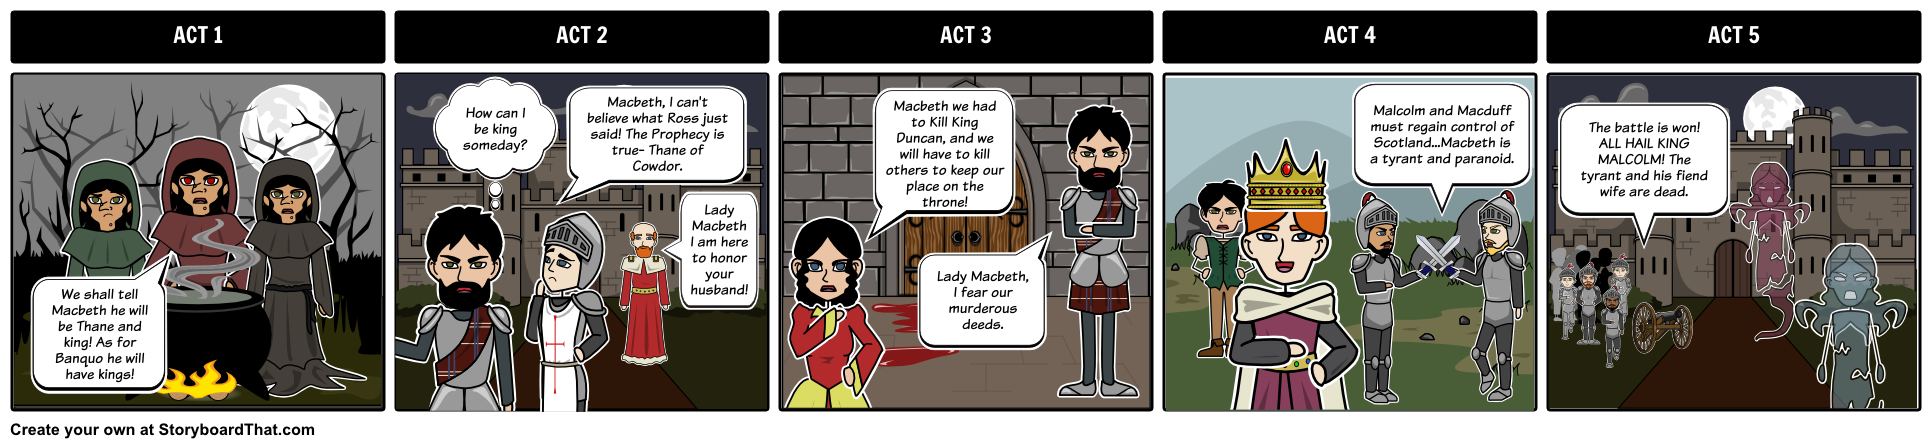 The Tragedy Of Macbeth By William Shakespeare Interactive Lesson Plan Plans No Fear Hamlet Act 1 Scene 3